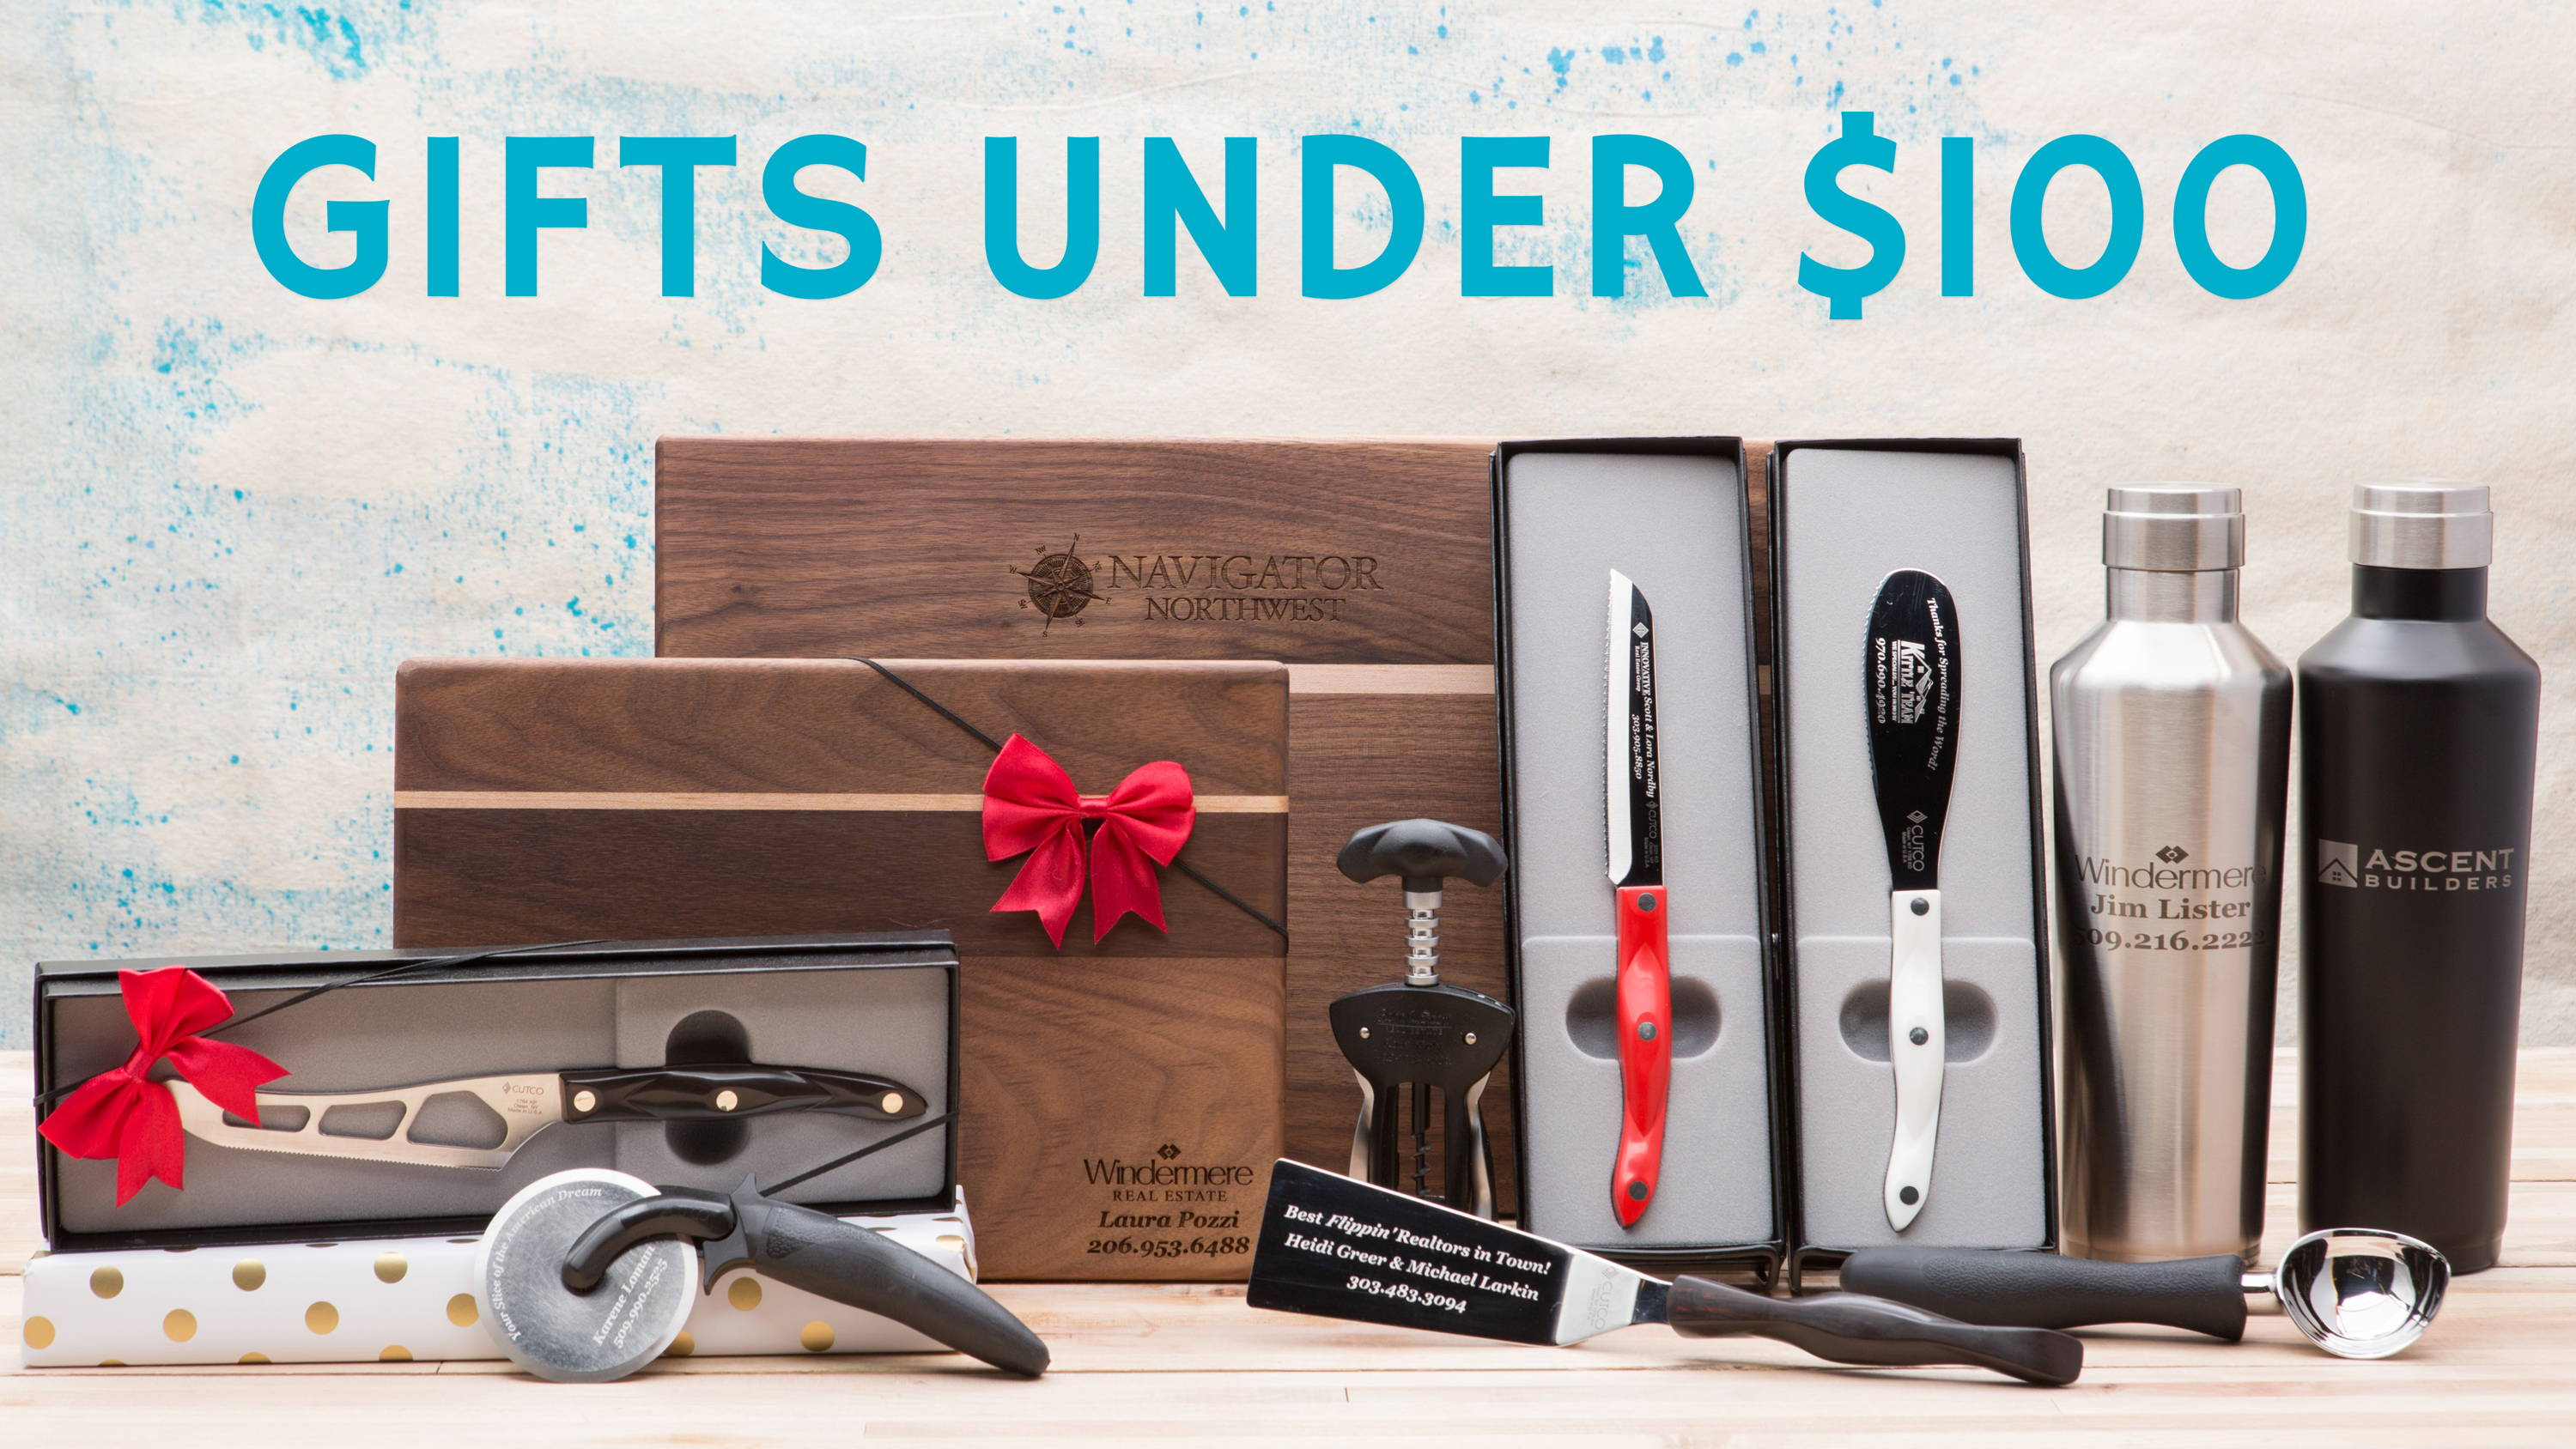 Branded client gits closing gifts Under $100